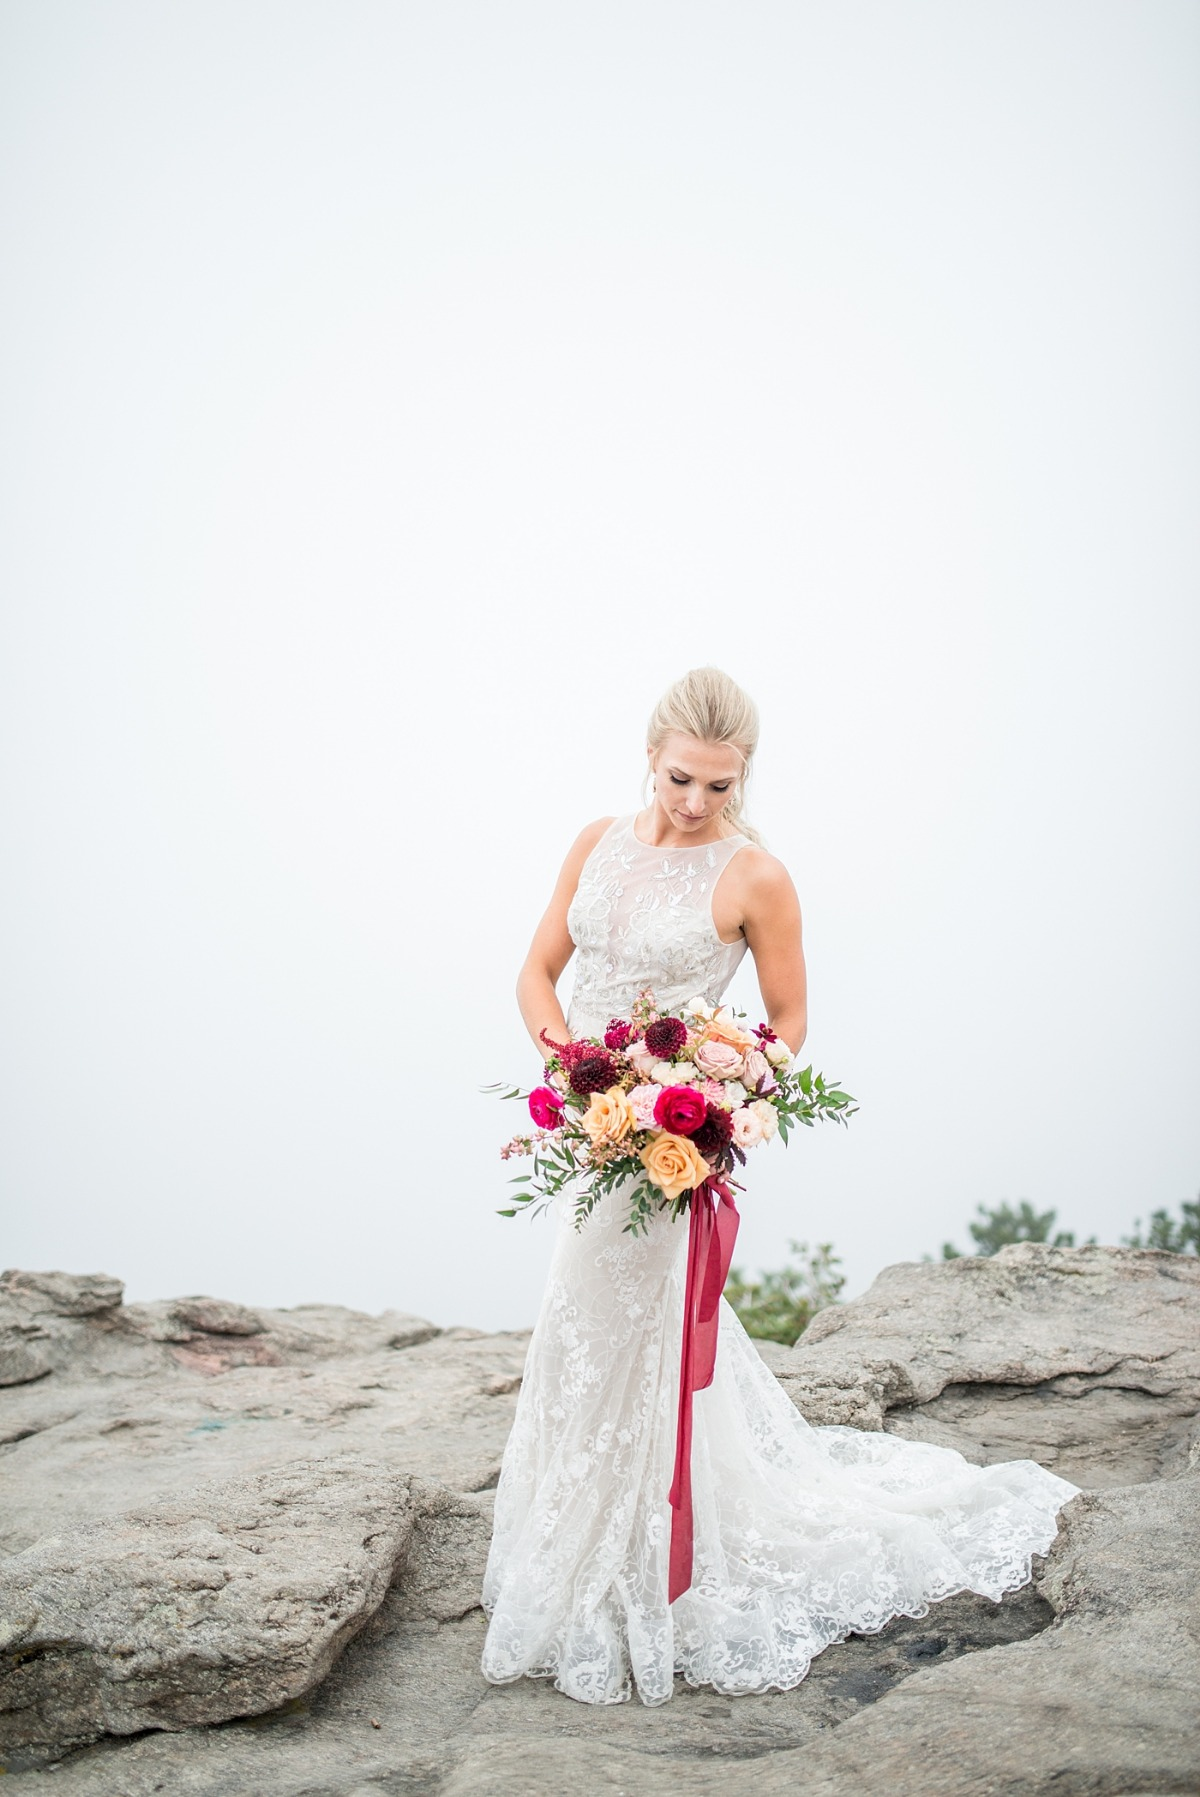 Stylish bride in the mountains